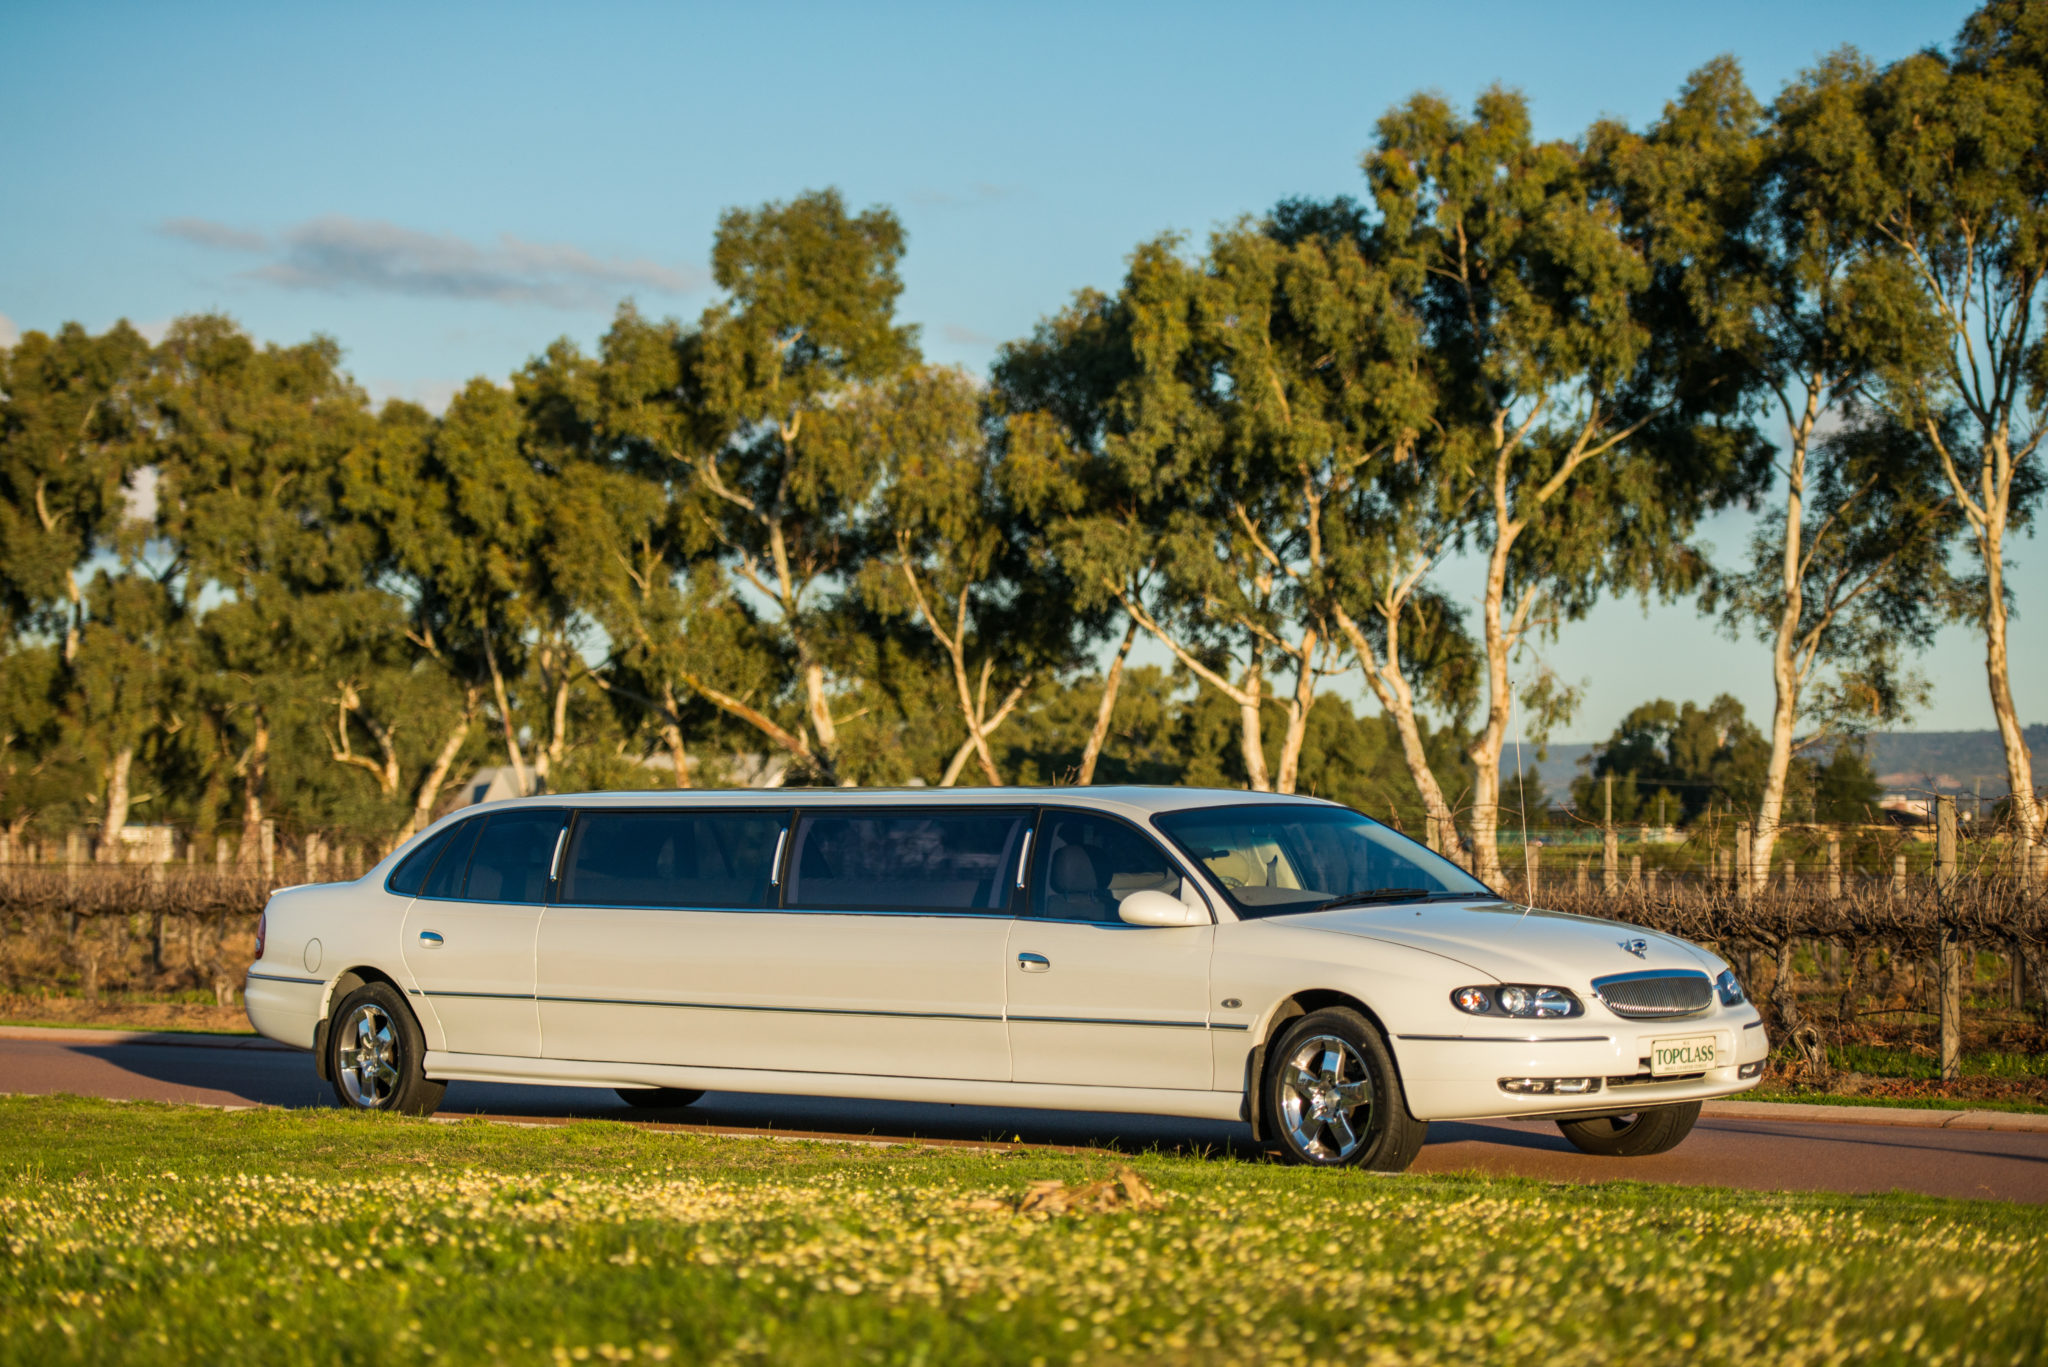 White Statesman Limousine Limousines And Classics Perth